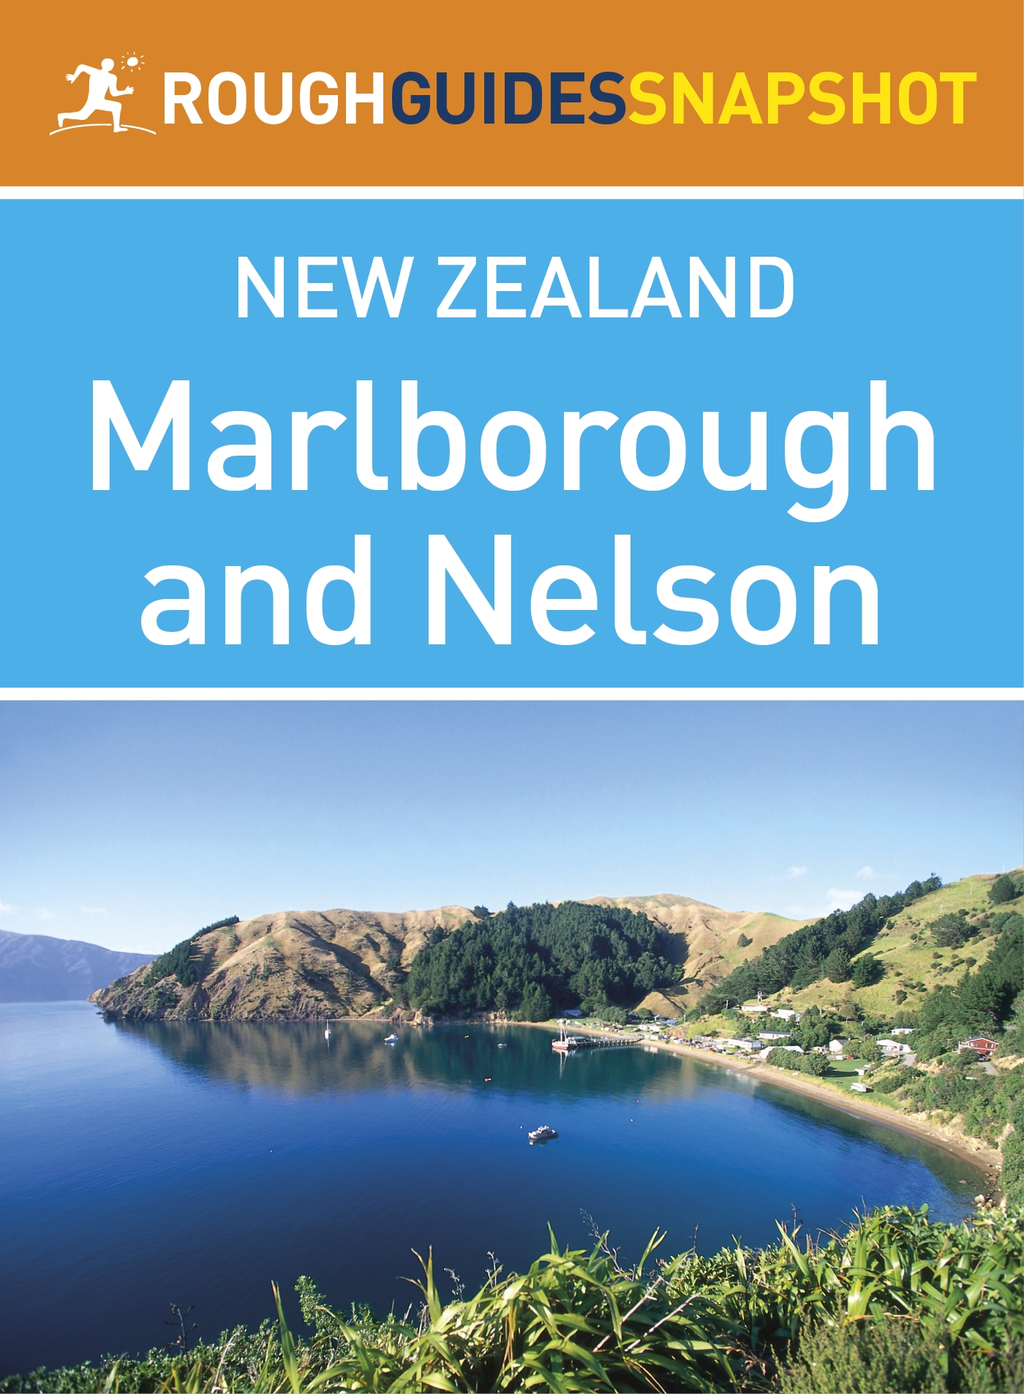 Marlborough and Nelson Rough Guides Snapshot New Zealand (includes Abel Tasman National Park and Kaikoura)